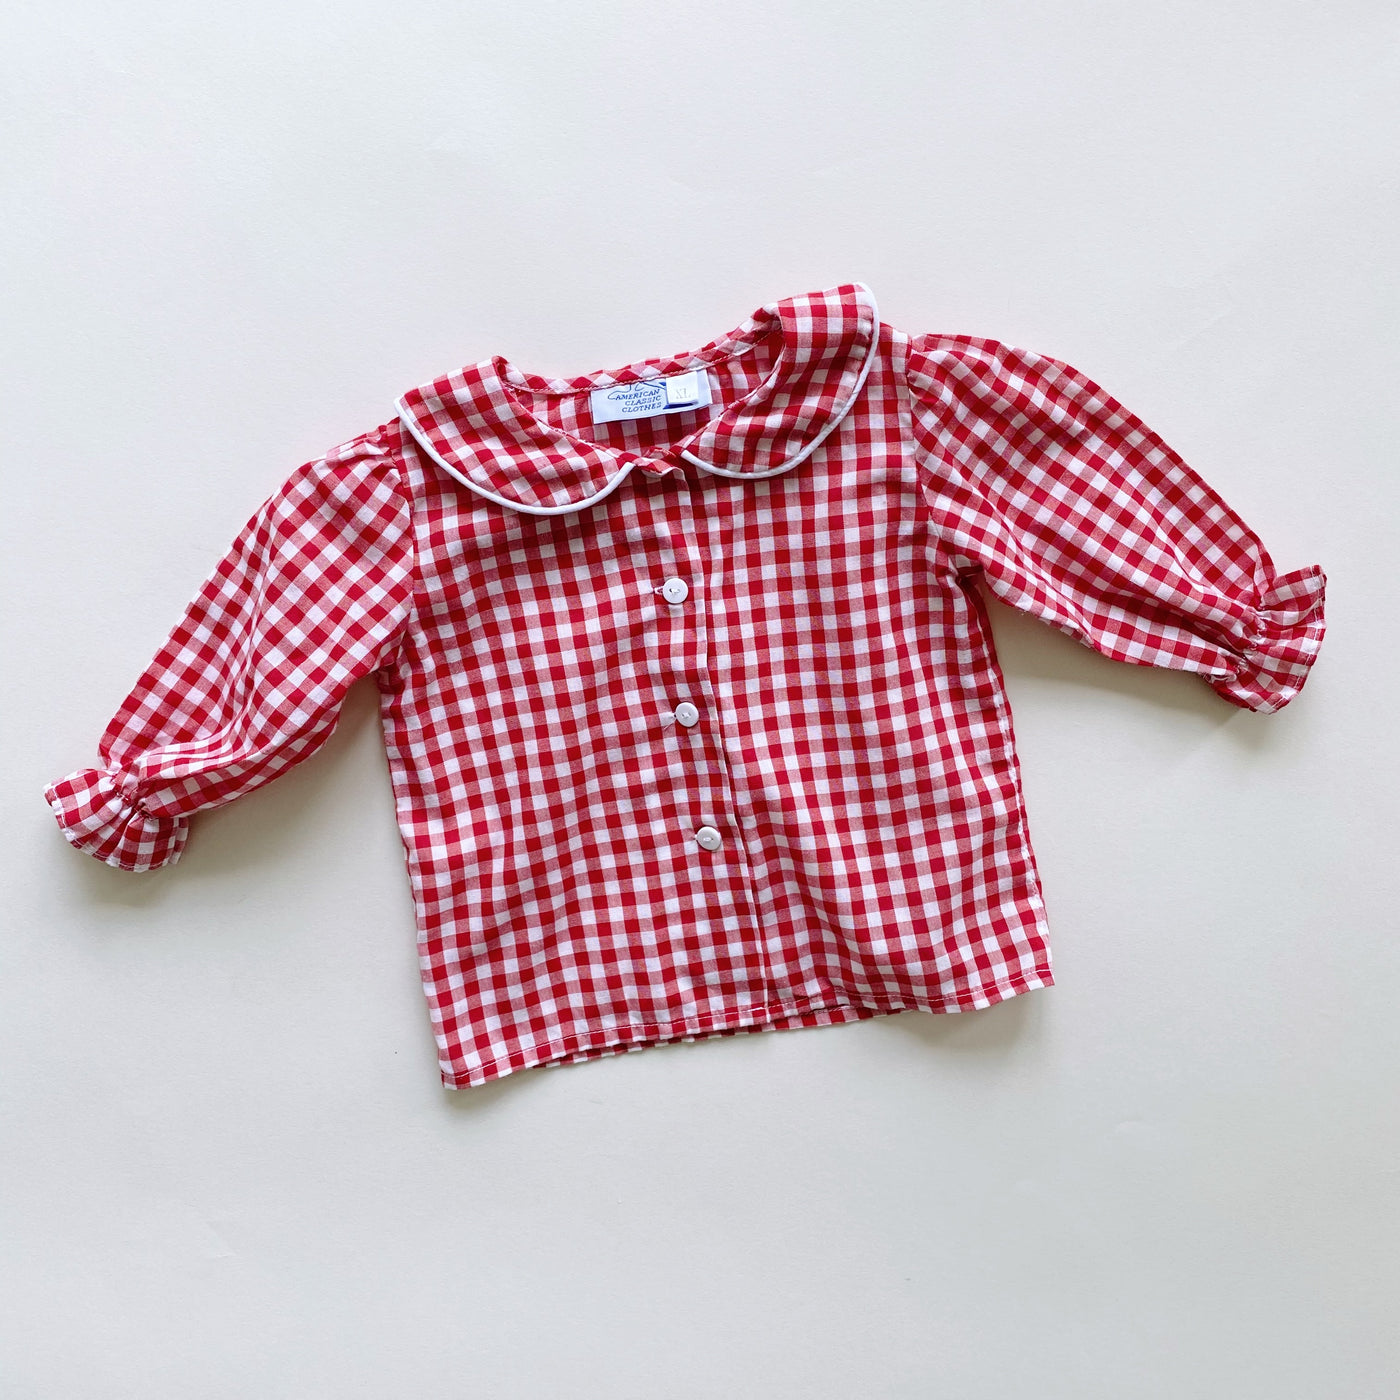 Vintage Picnic Perfect Top / Size 18M